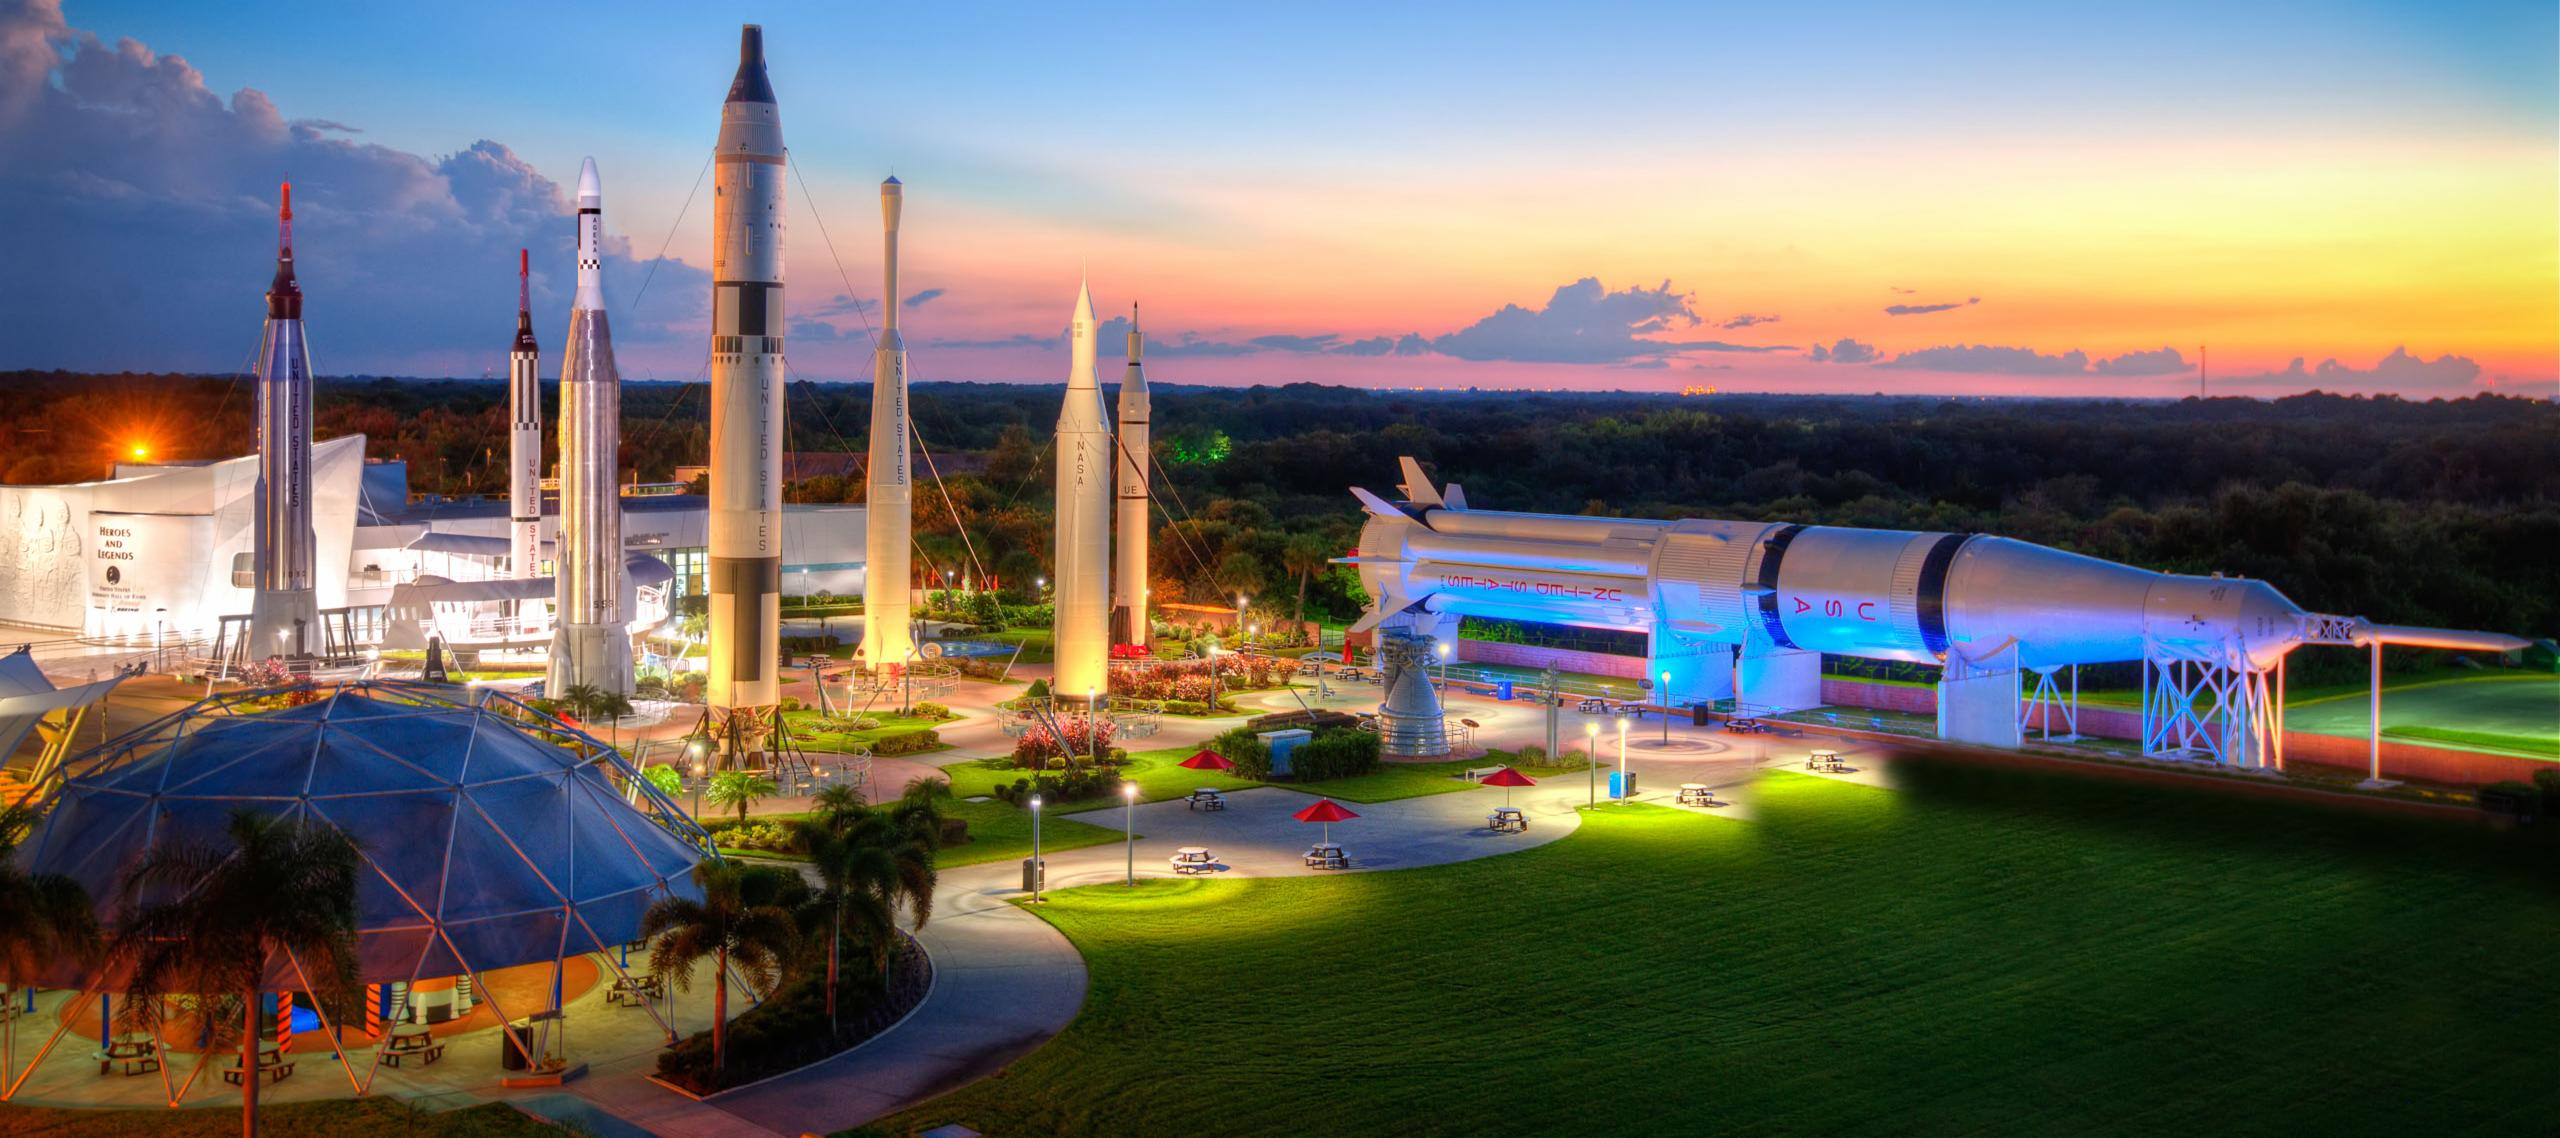 Rocket Garden in Kennedy Space Centre, Orlando